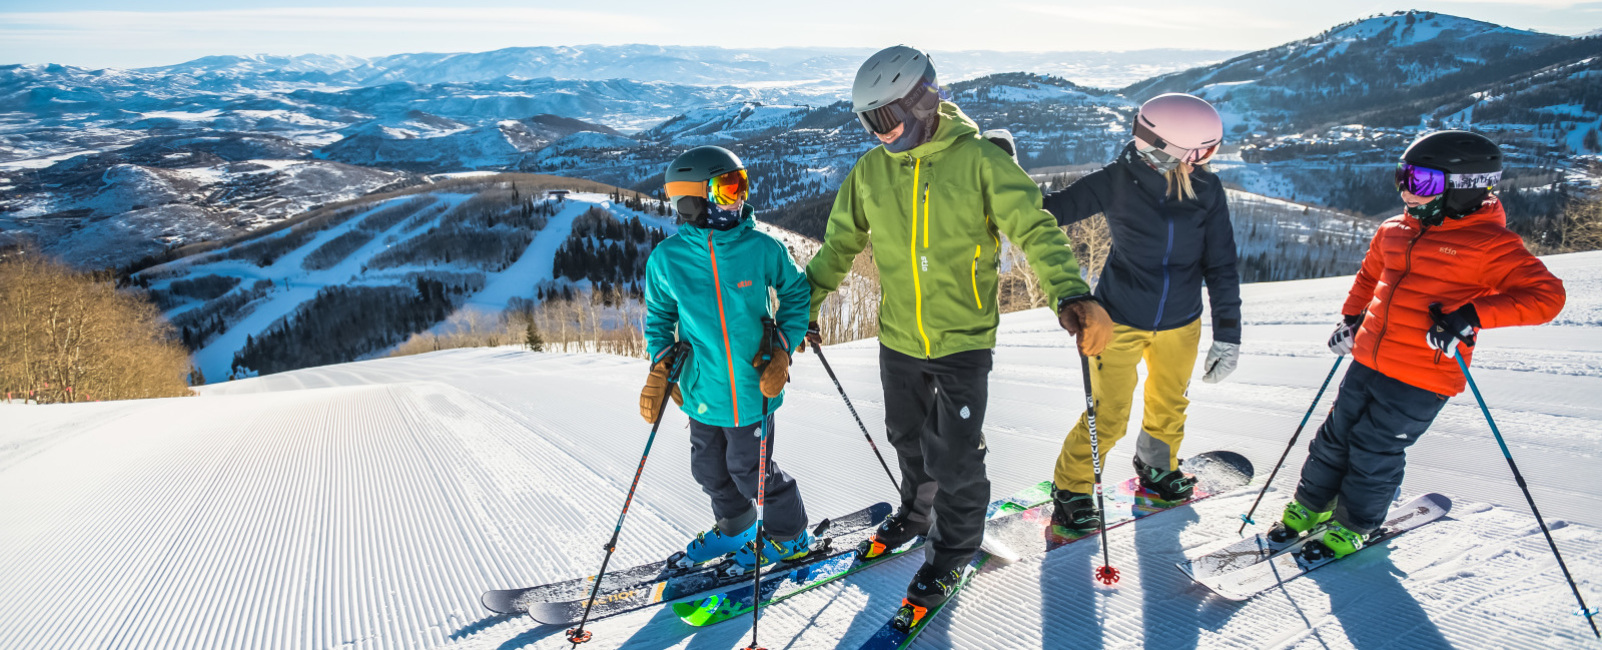 48 Hours in Park City